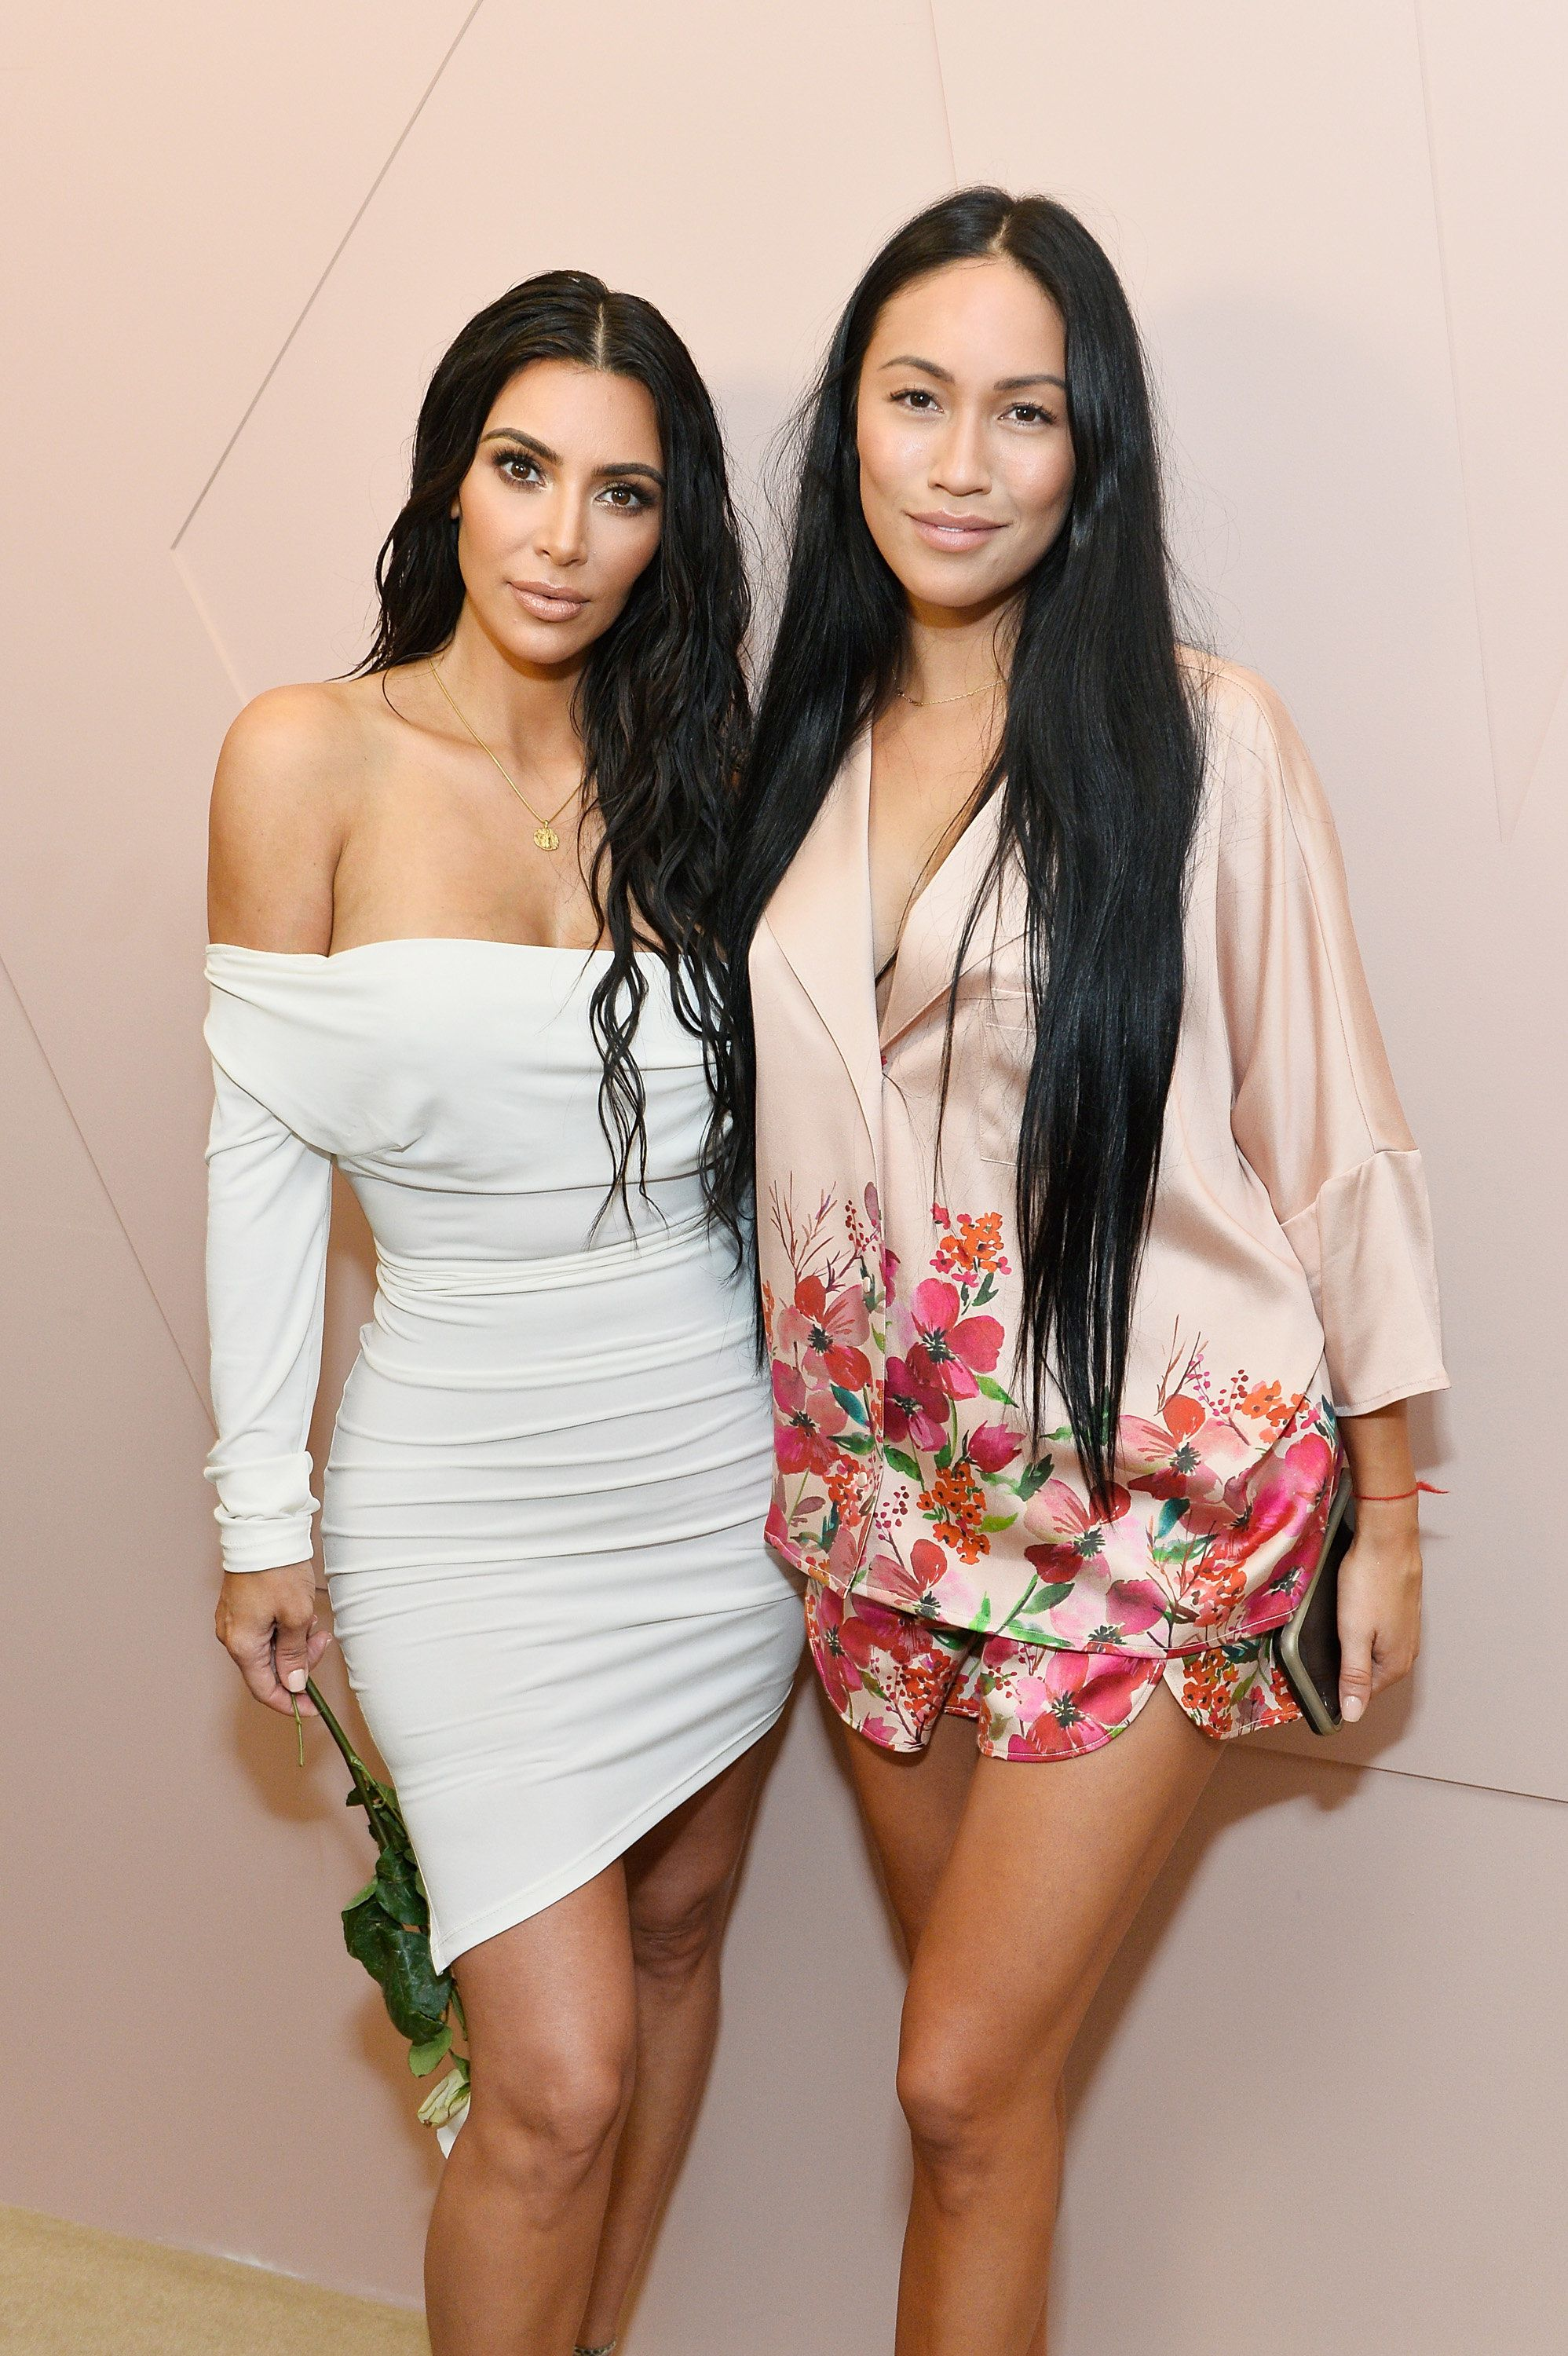 Kim Kardashian and Stephanie Shepherd celebrate the launch of KKW Beauty on June 20, 2017, in Los Angeles.